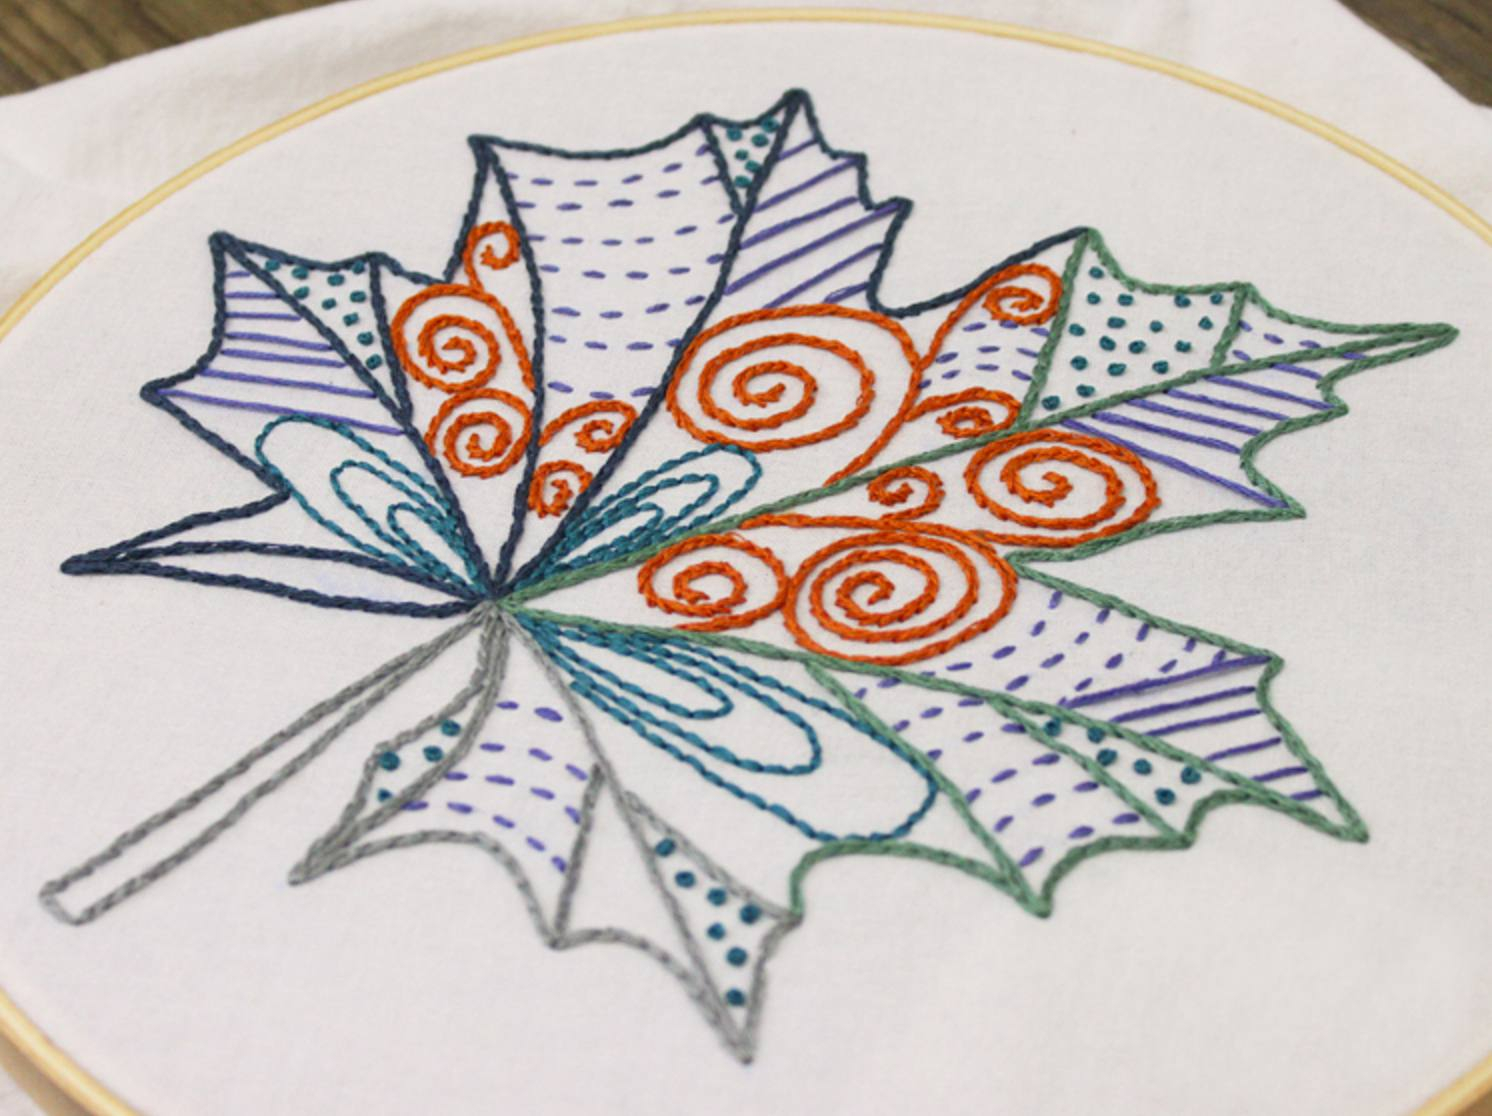 Free Hand Embroidery Pattern 10 Hand Embroidery Patterns For Autumn Stitching